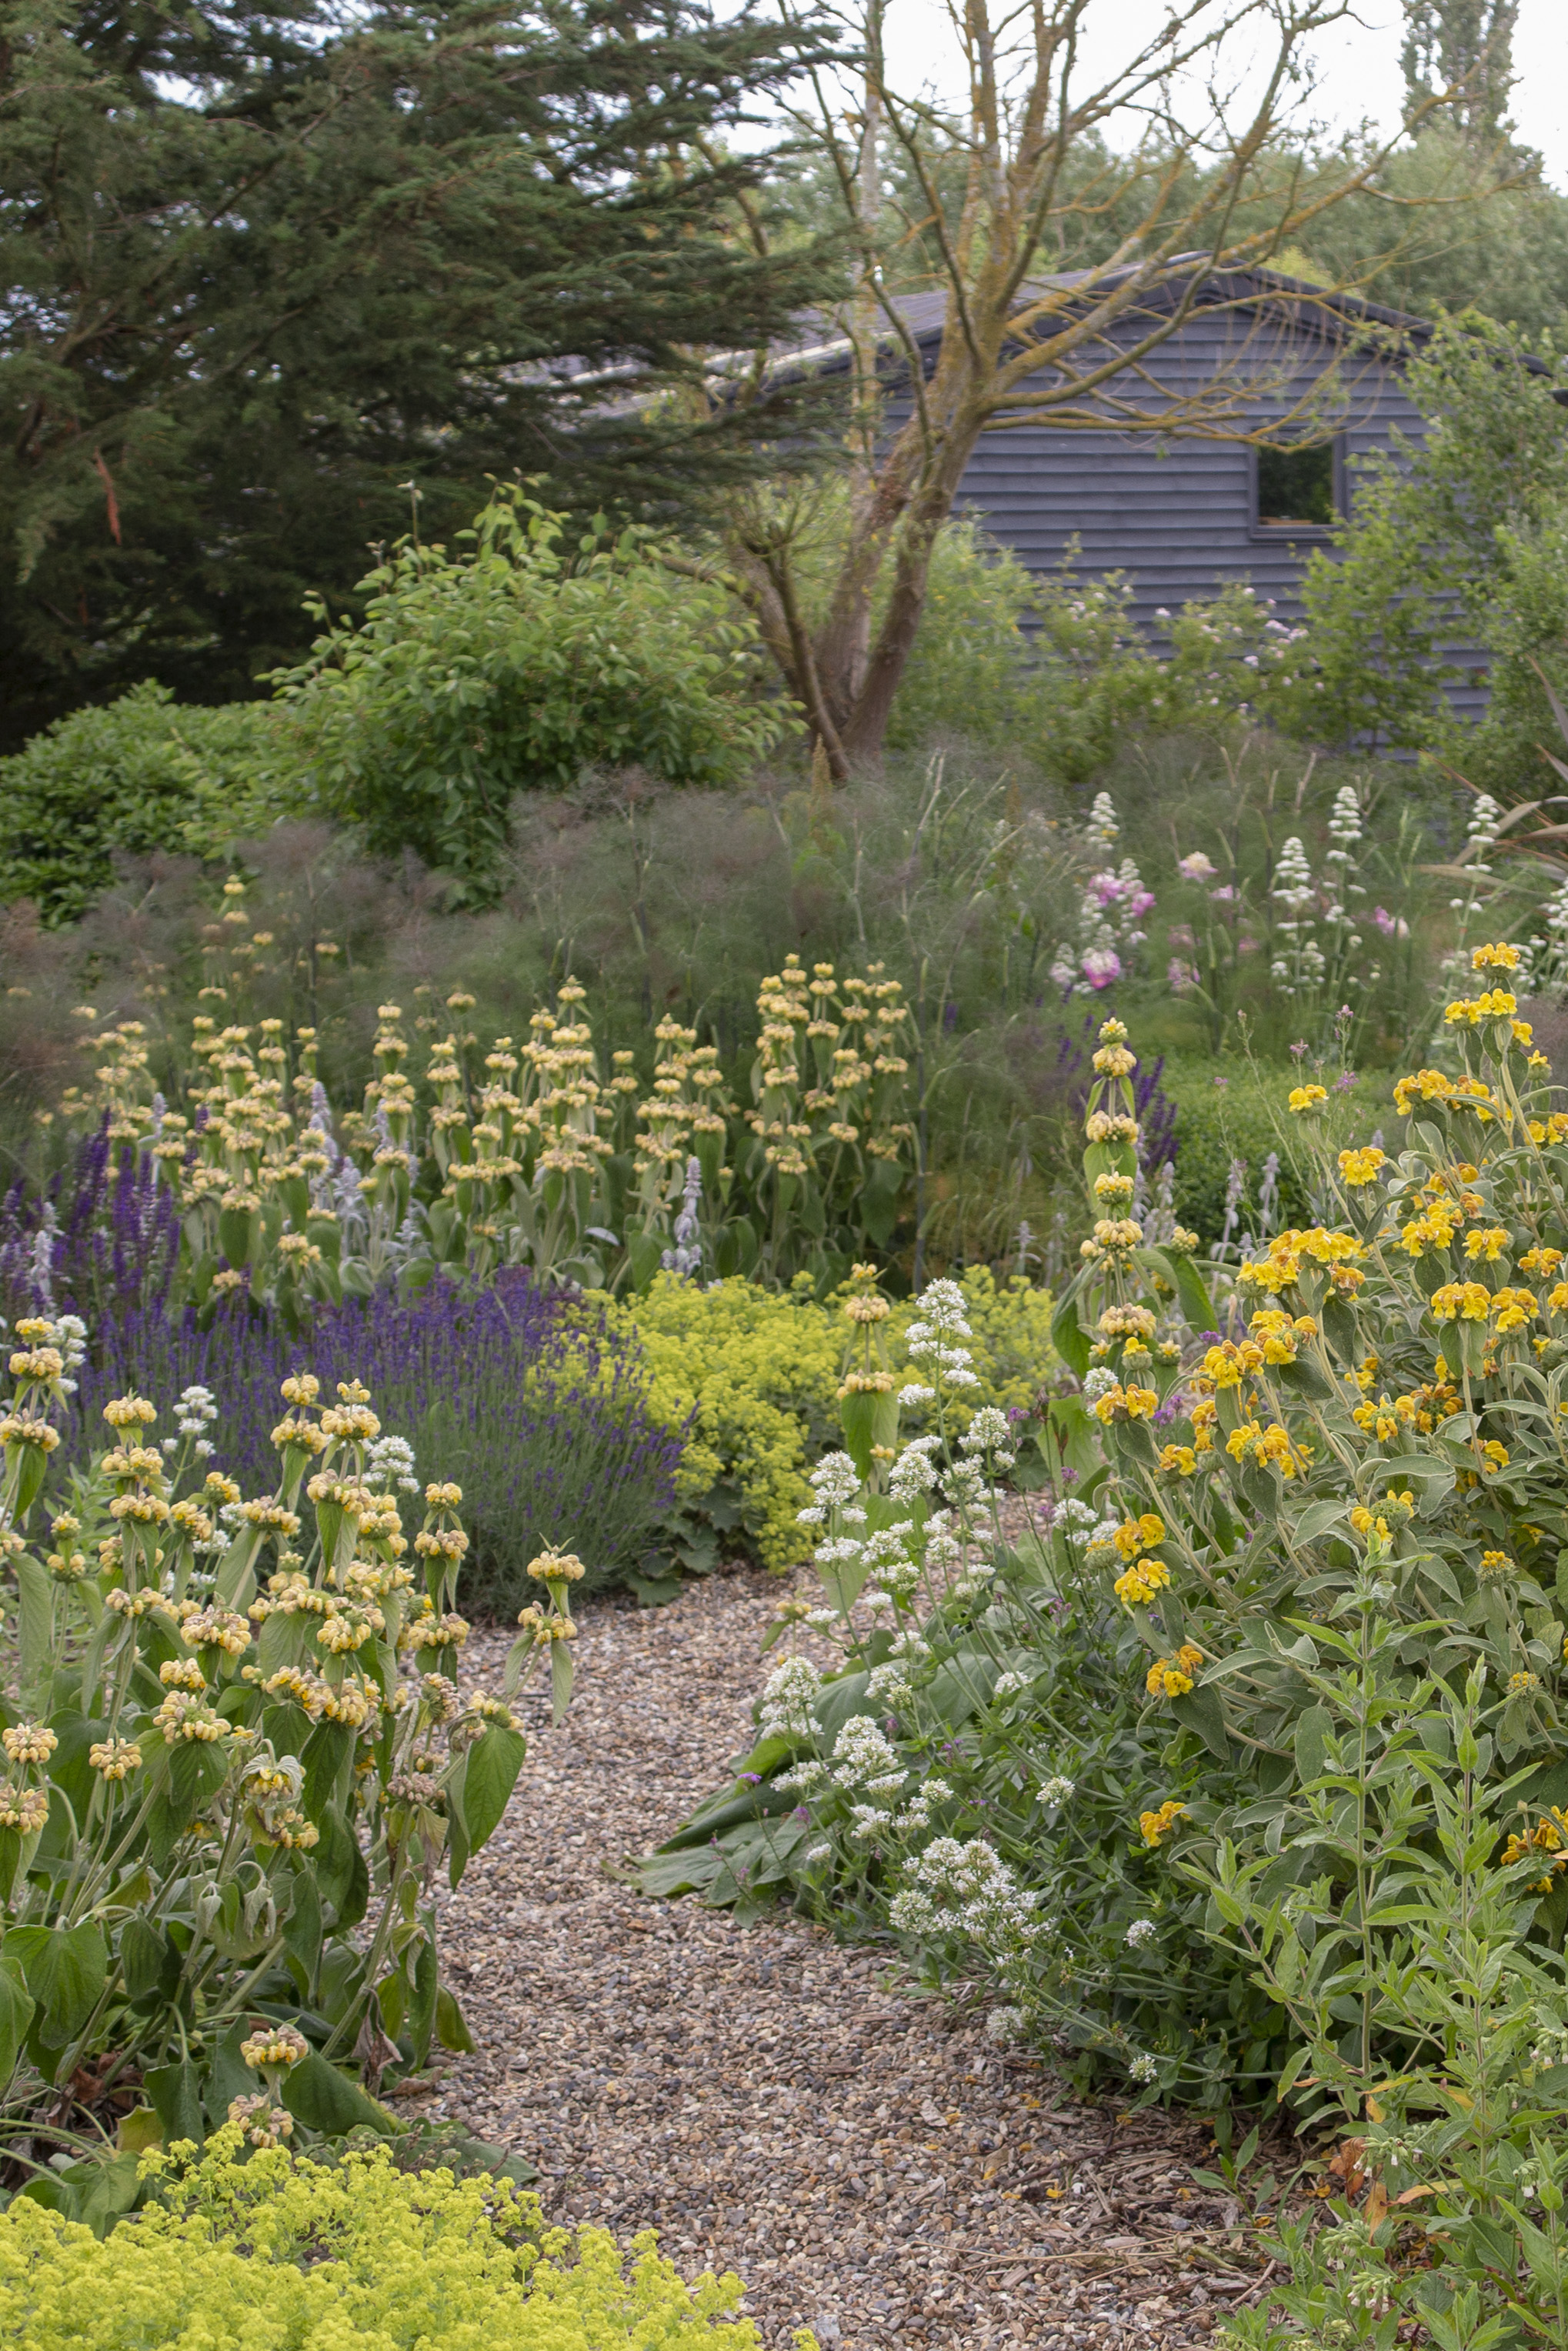 Plants which are fine in a windy garden will self-seed and spread